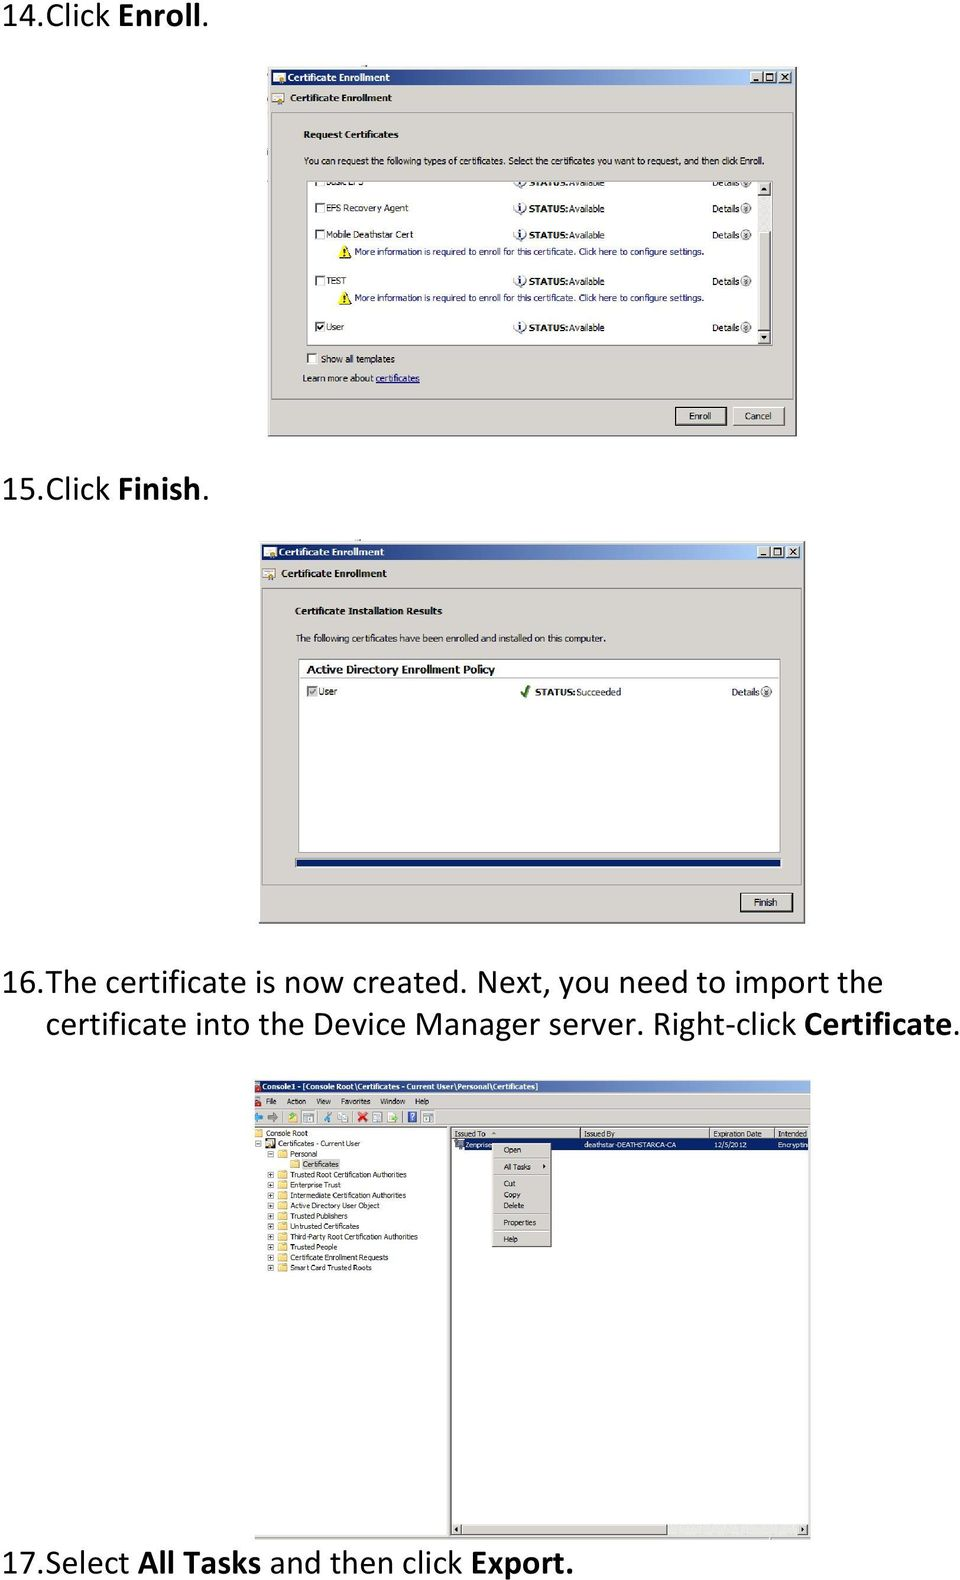 Next, you need to import the certificate into the